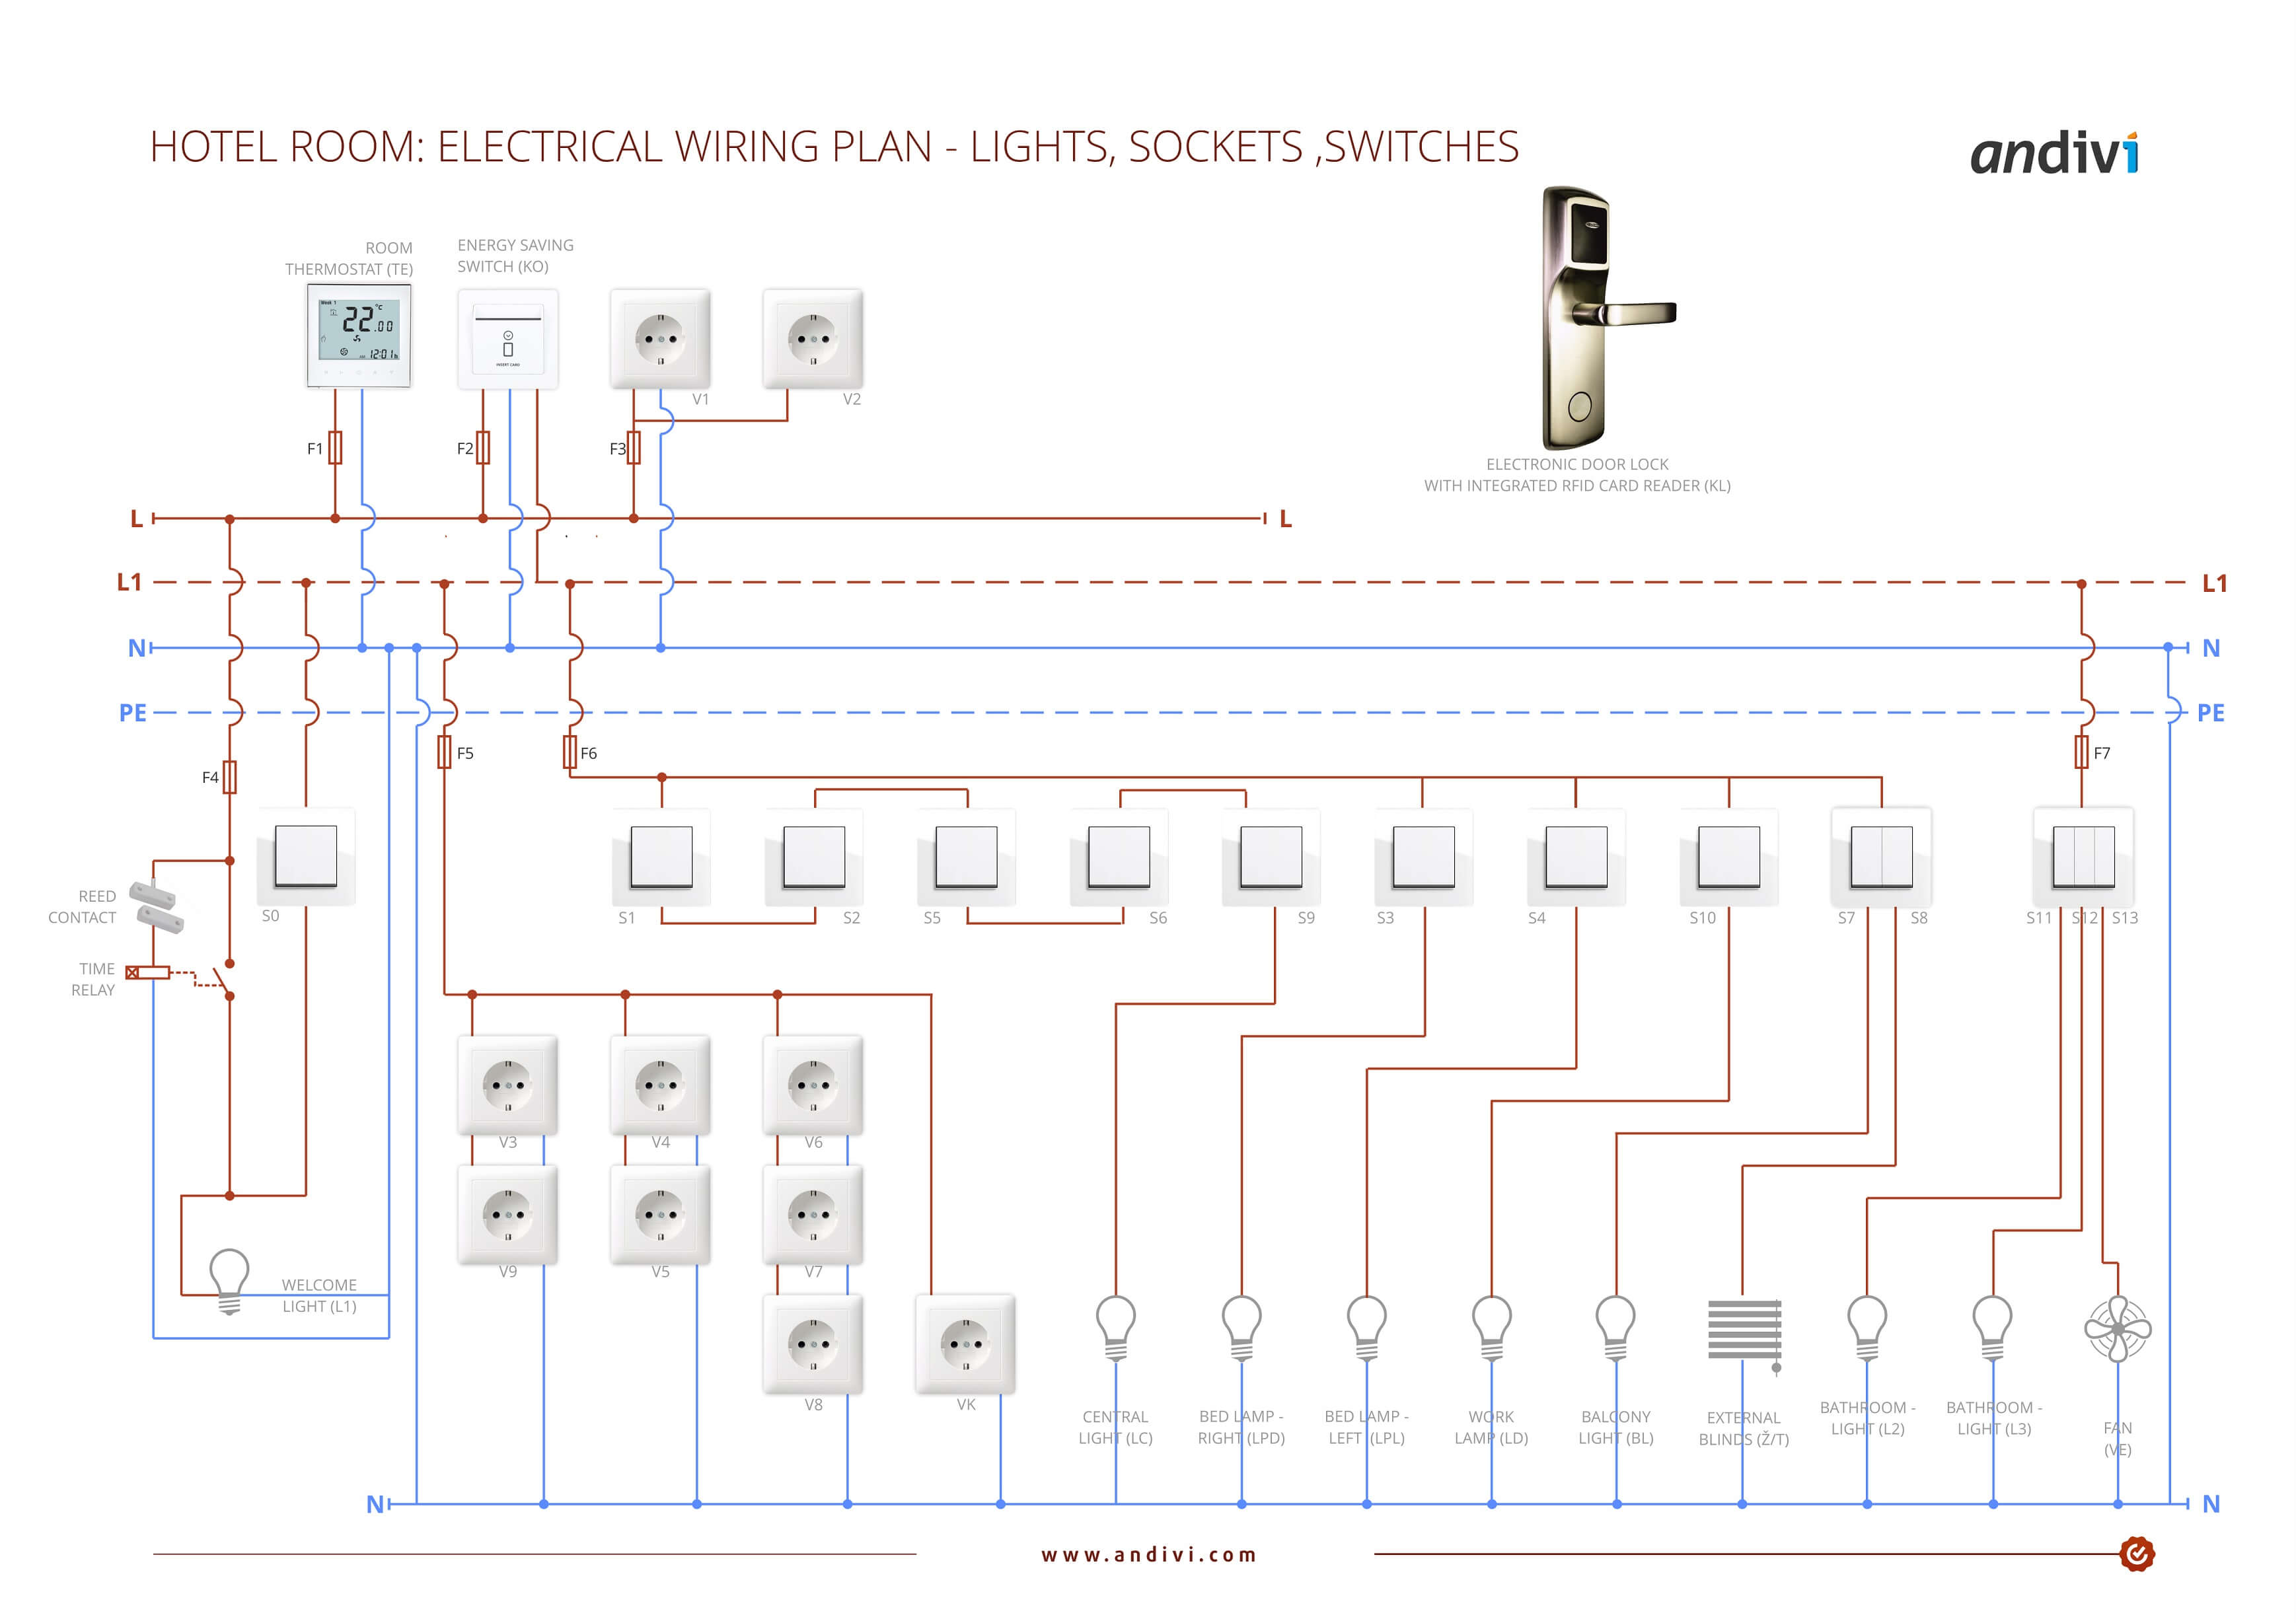 electrical wiring plan - hotel room - lights-sockets-switches